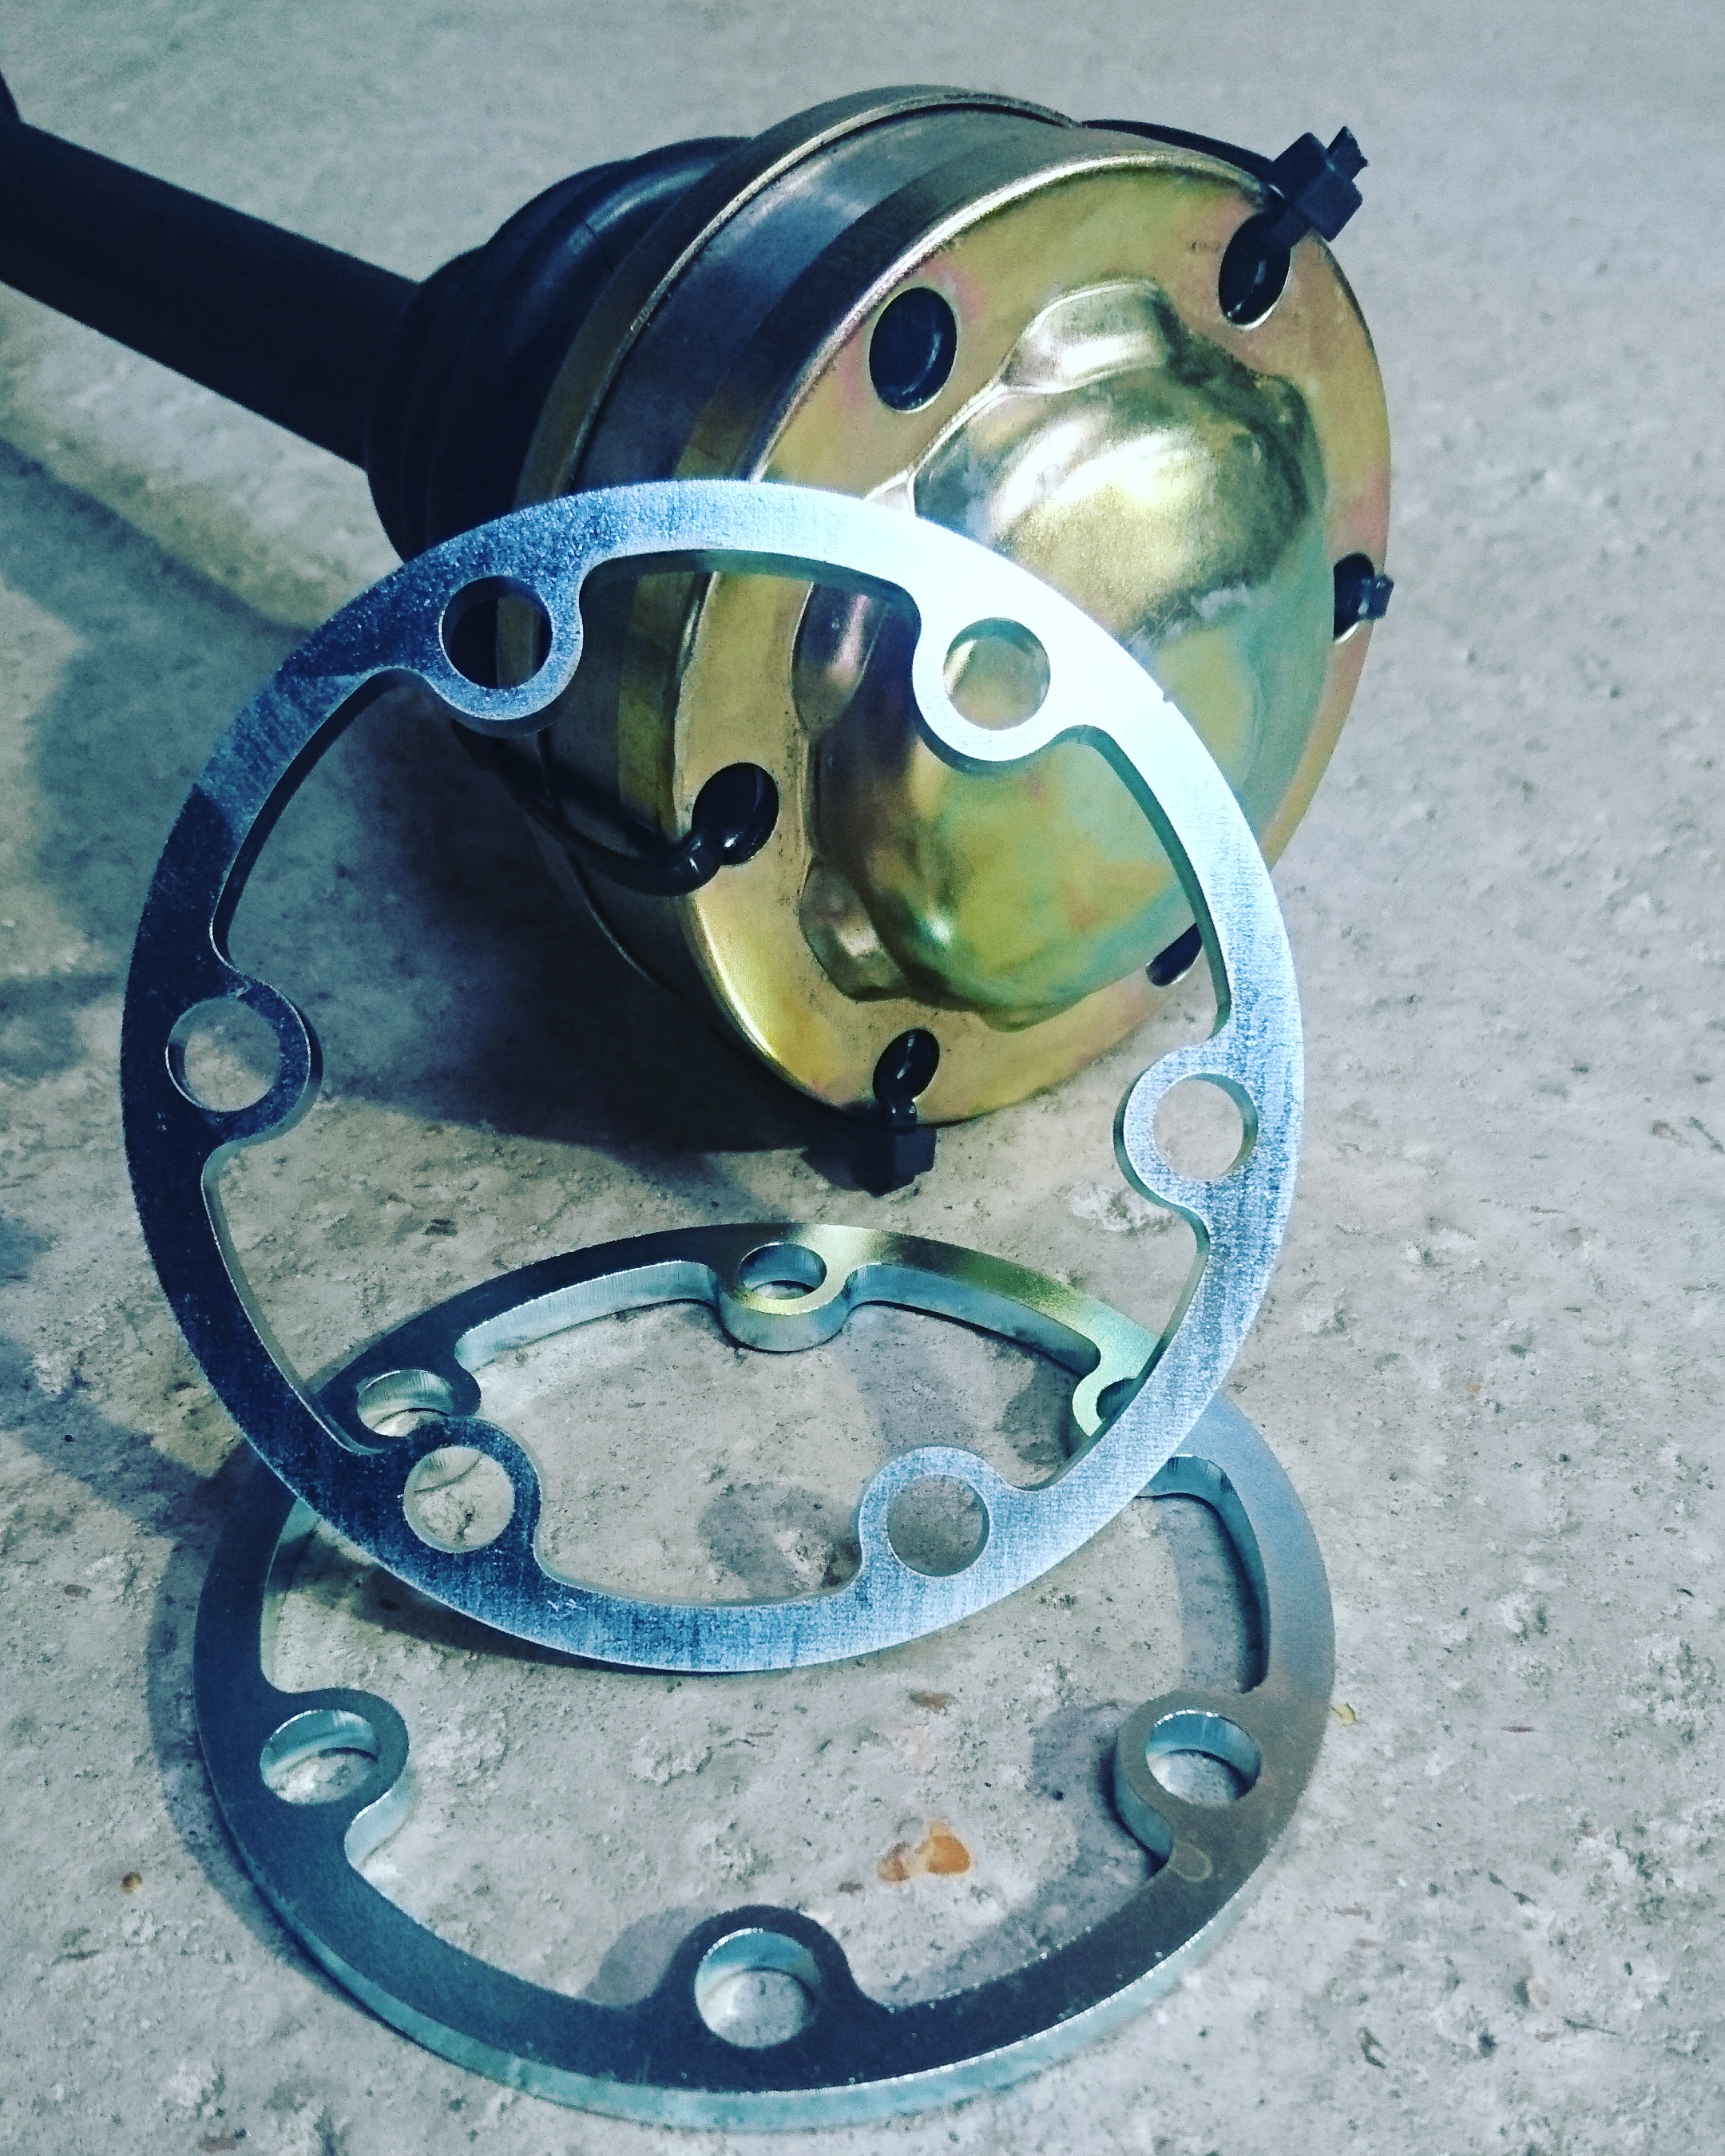 Showthread furthermore Hack Engineering Driveshaft Spacers E36 M3e46 M3 as well Showthread together with Pro Line Abs Delete Brake Line Set E46 Inc M3 furthermore 70411 Added 4 Qts Oil Wheres Going 6. on bmw n55 engine failure